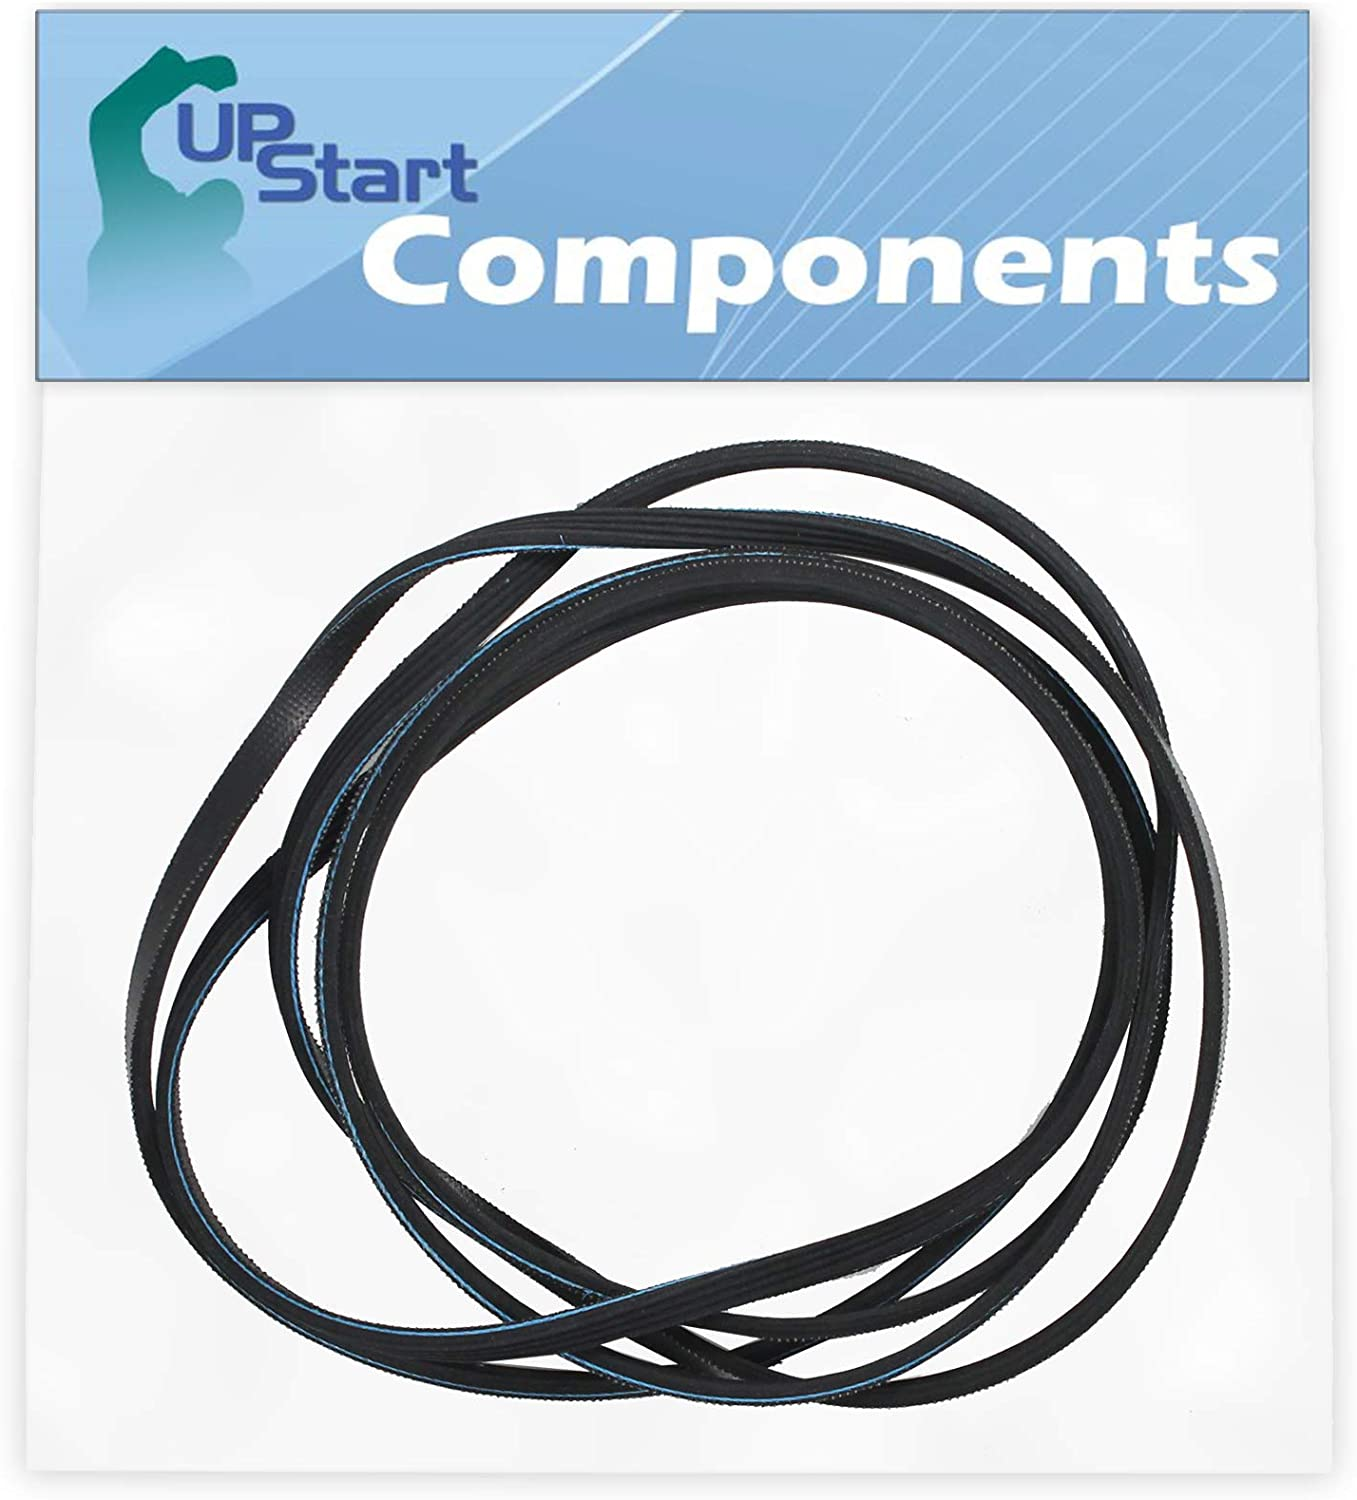 341241 Dryer Drum Belt Replacement For Whirlpool Wgd5000Dw1 Dyer - Compatible With 8066065 Belt - Upstart Components Brand